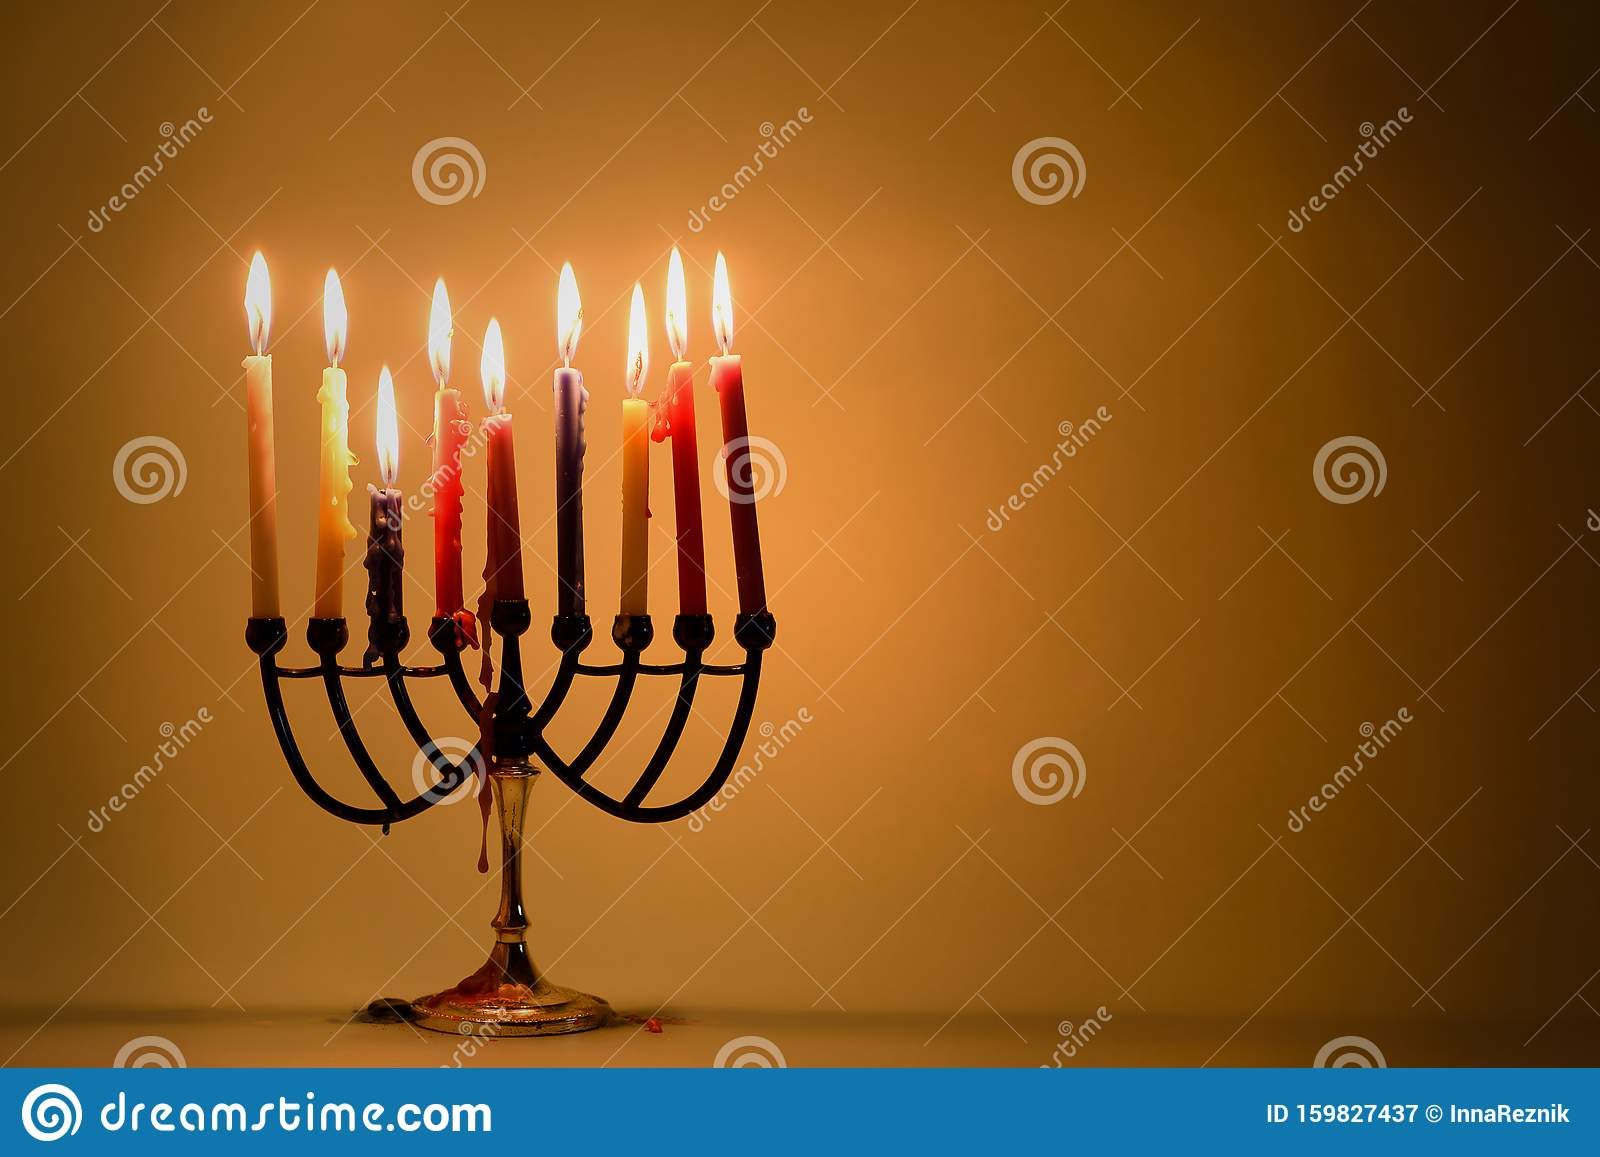 Hanukkah: Holiday Menorah With Variety Of Colorful Lit Candles.